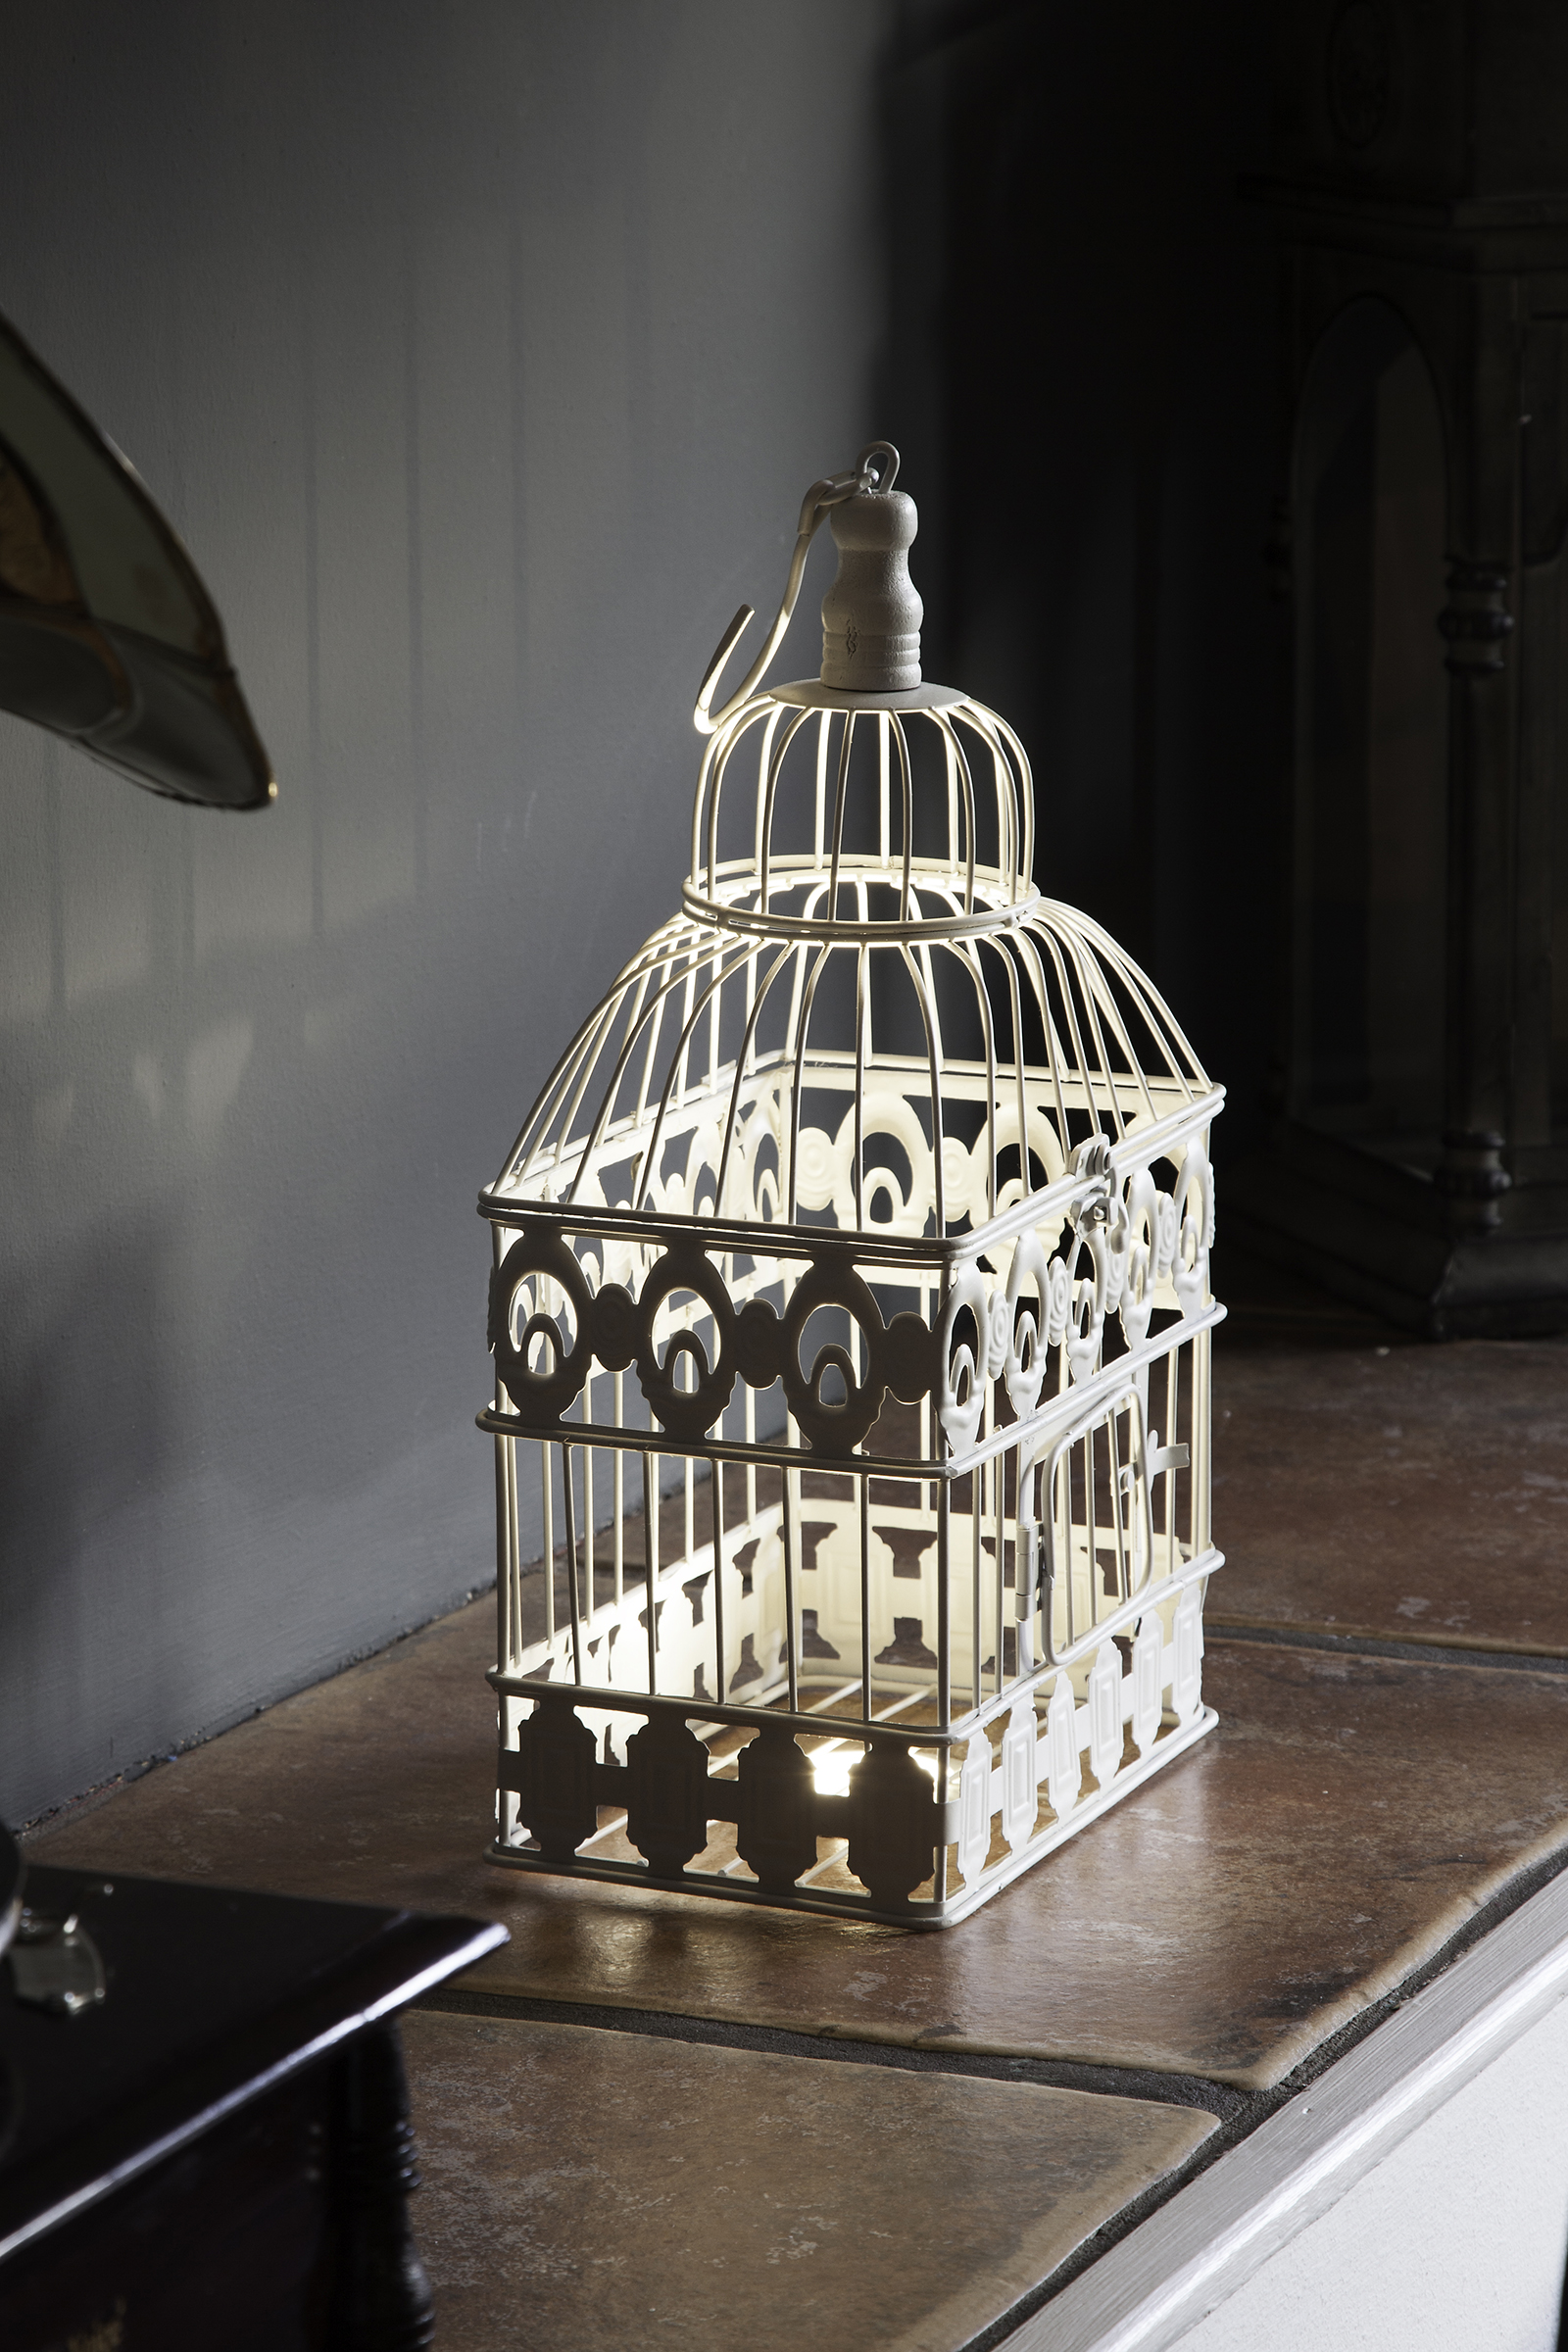 Cafe Tartine alcove and birdcage